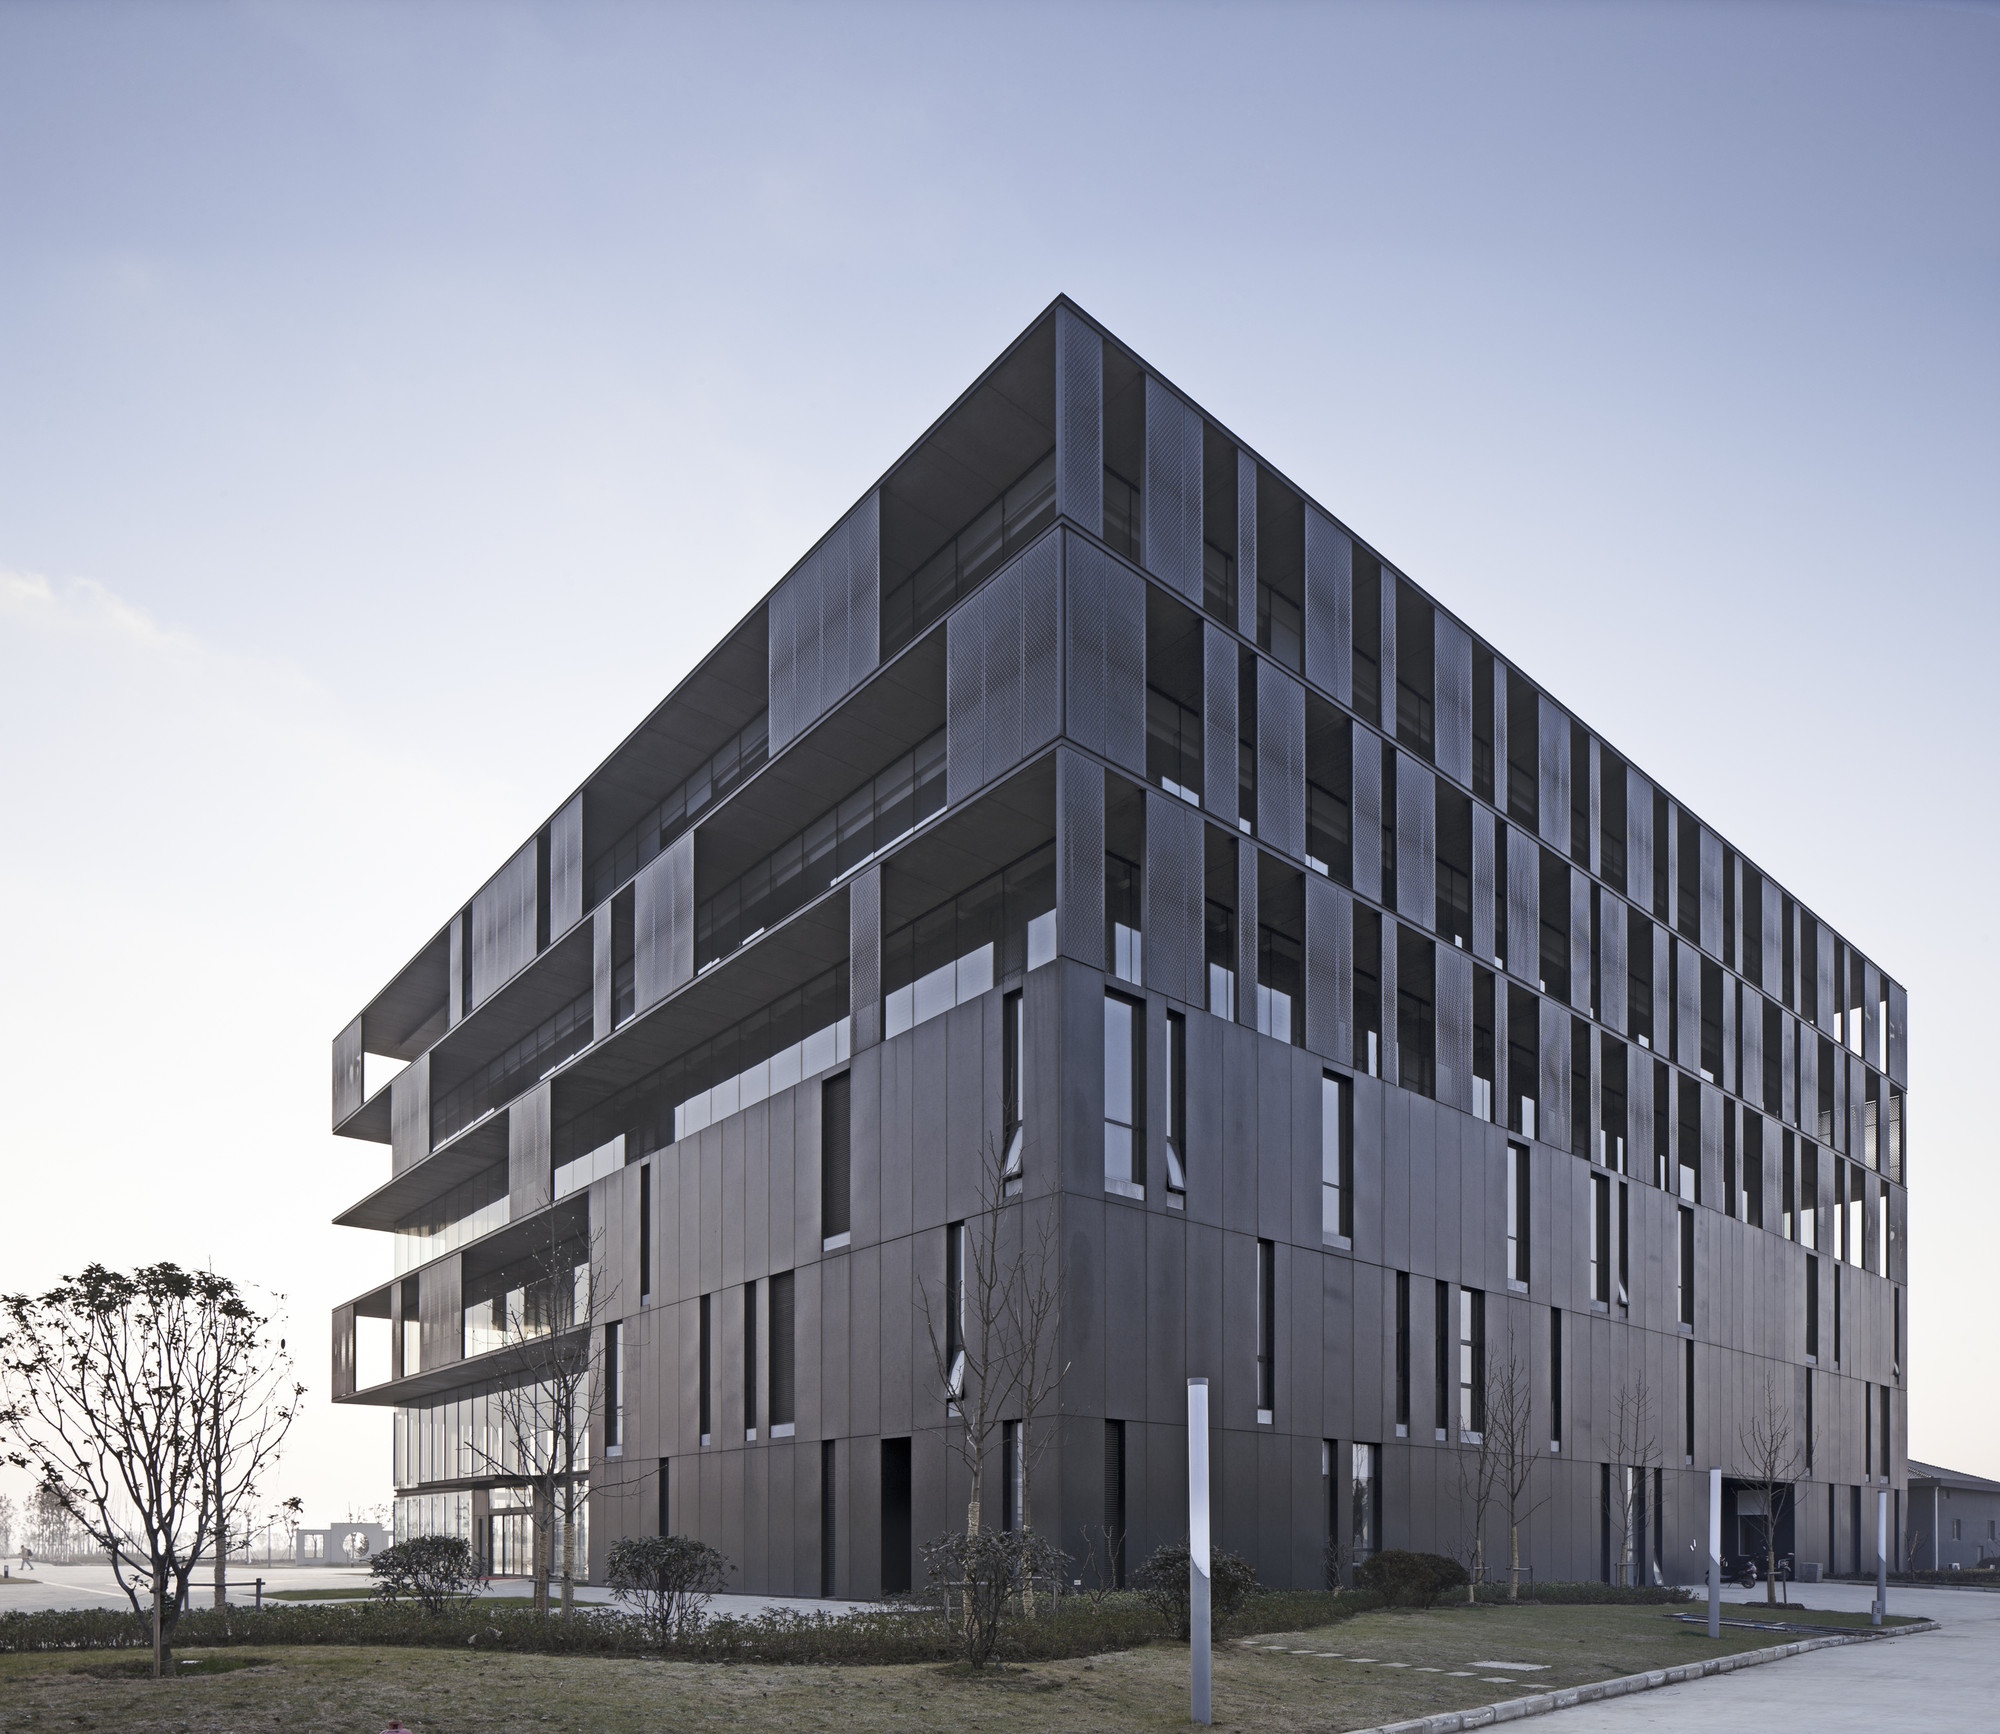 Wuxi Memsic Semiconductor Headquarter / UDG China, Courtesy of UDG China